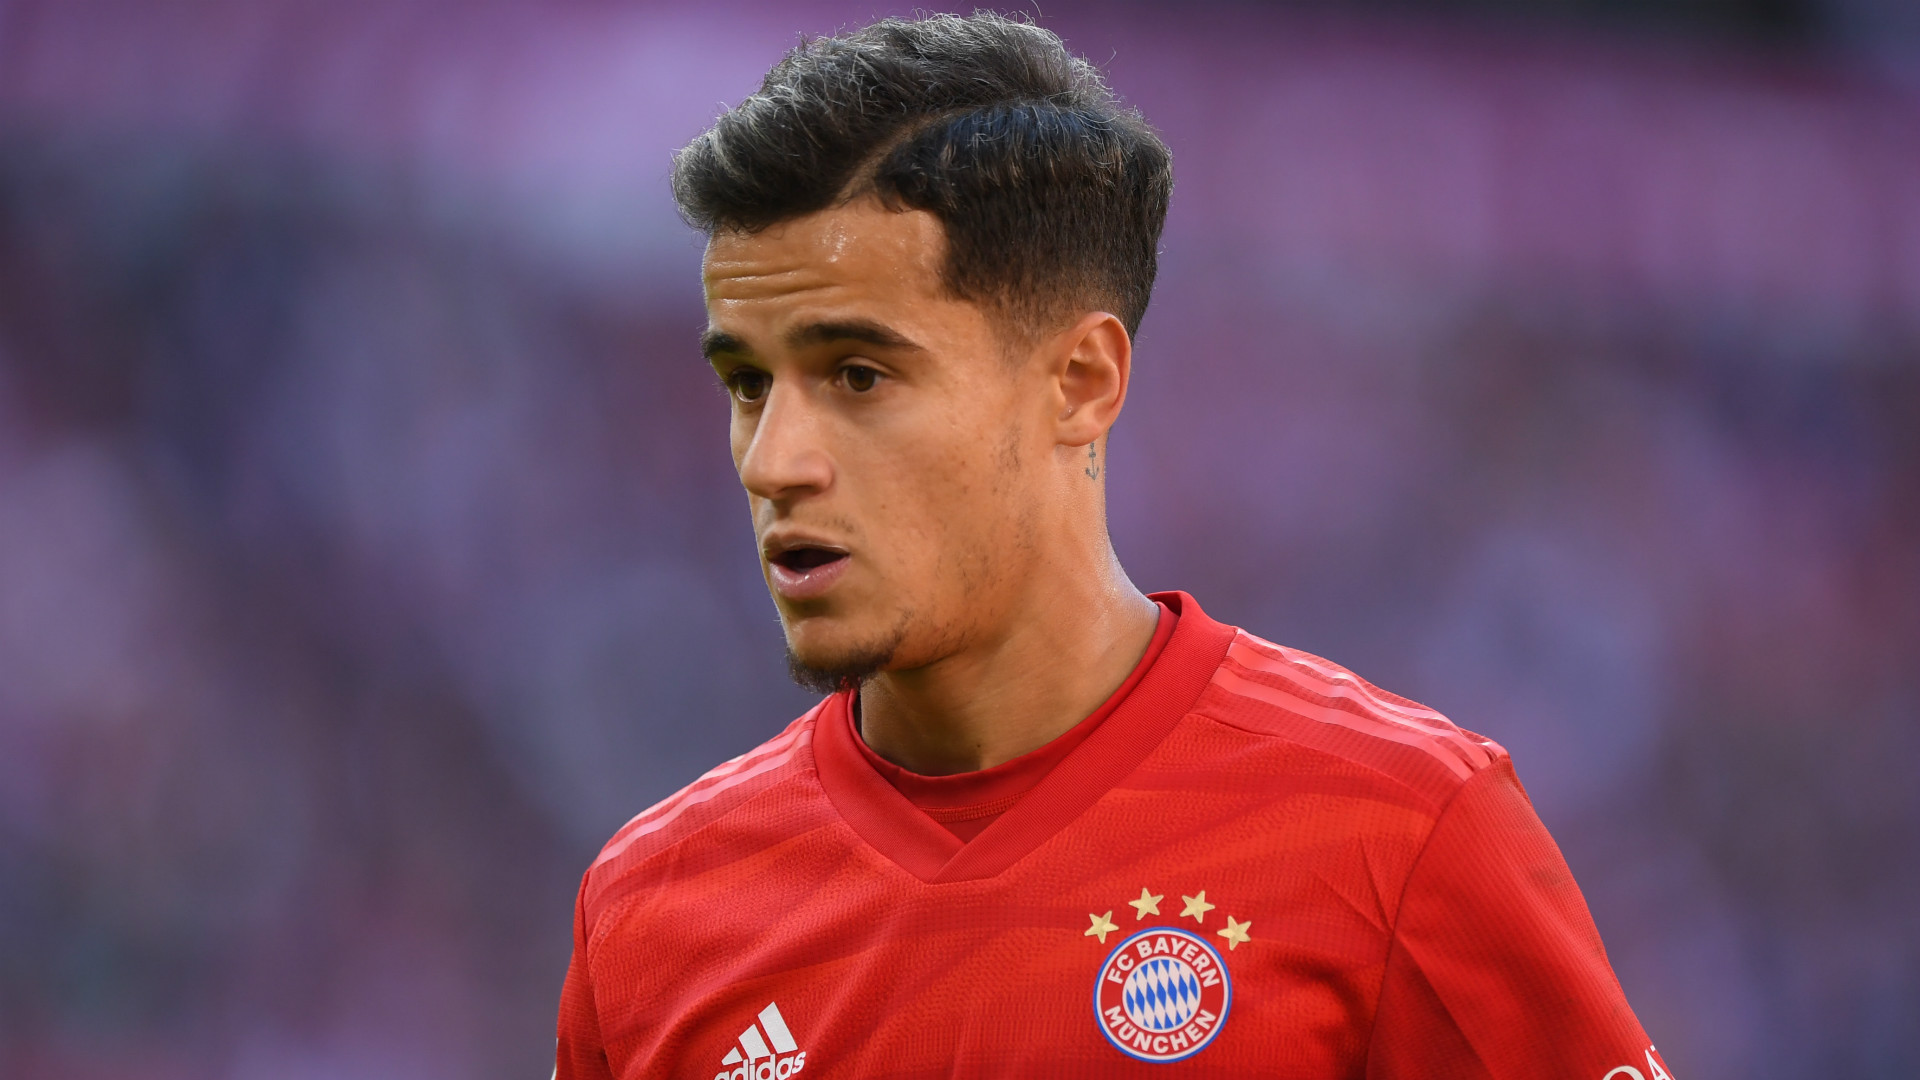 Bayern Munich boss Flick unsure what Coutinho's future holds as injury threatens end of loan spell